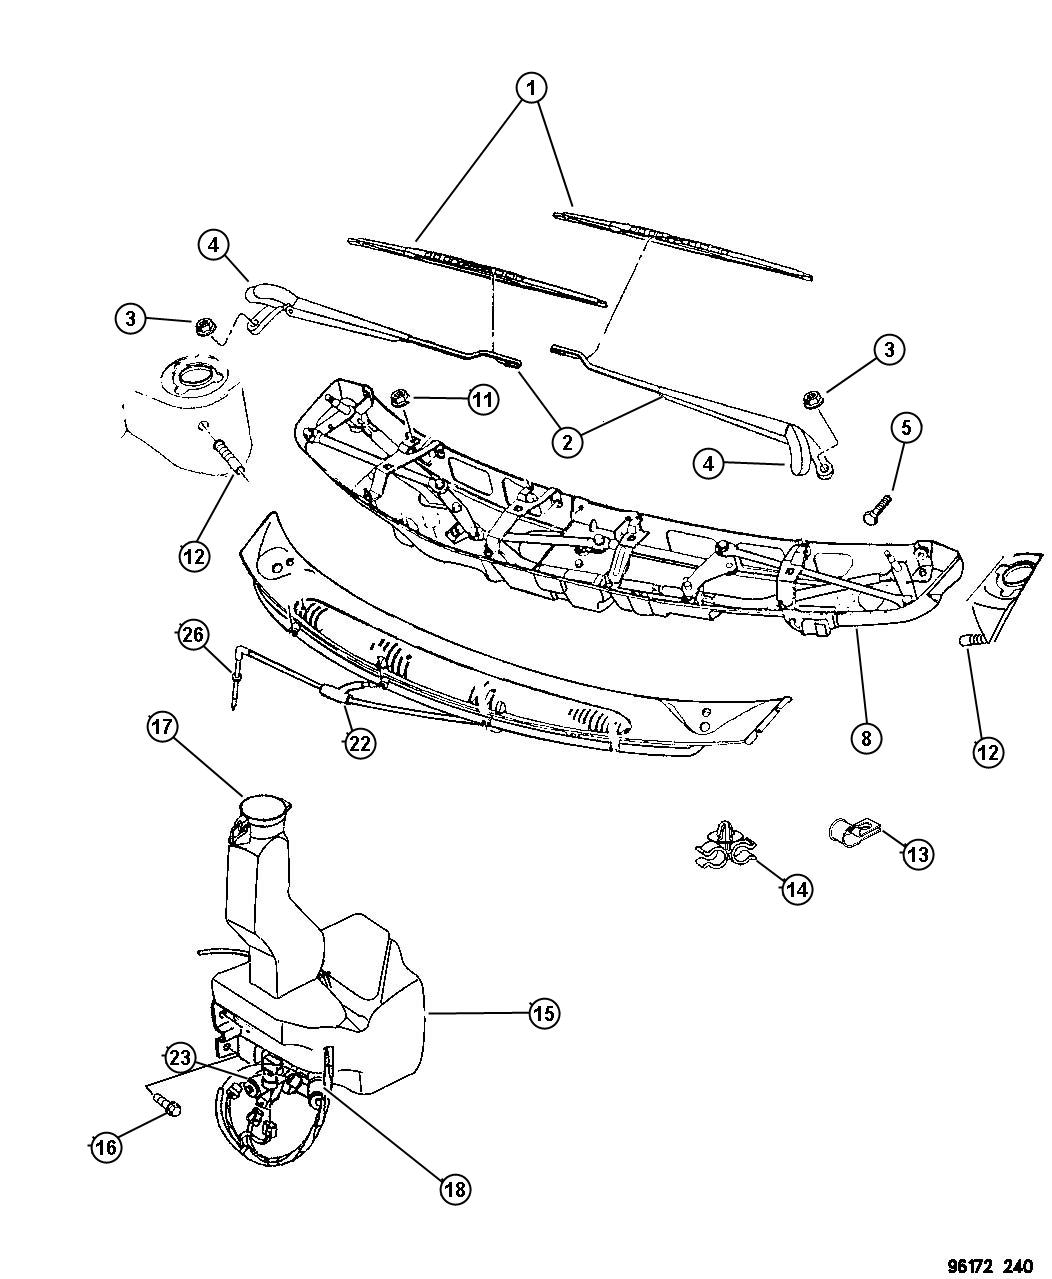 1999 Dodge Grand Caravan Nozzle Washer Windshield Body Wiring Diagram